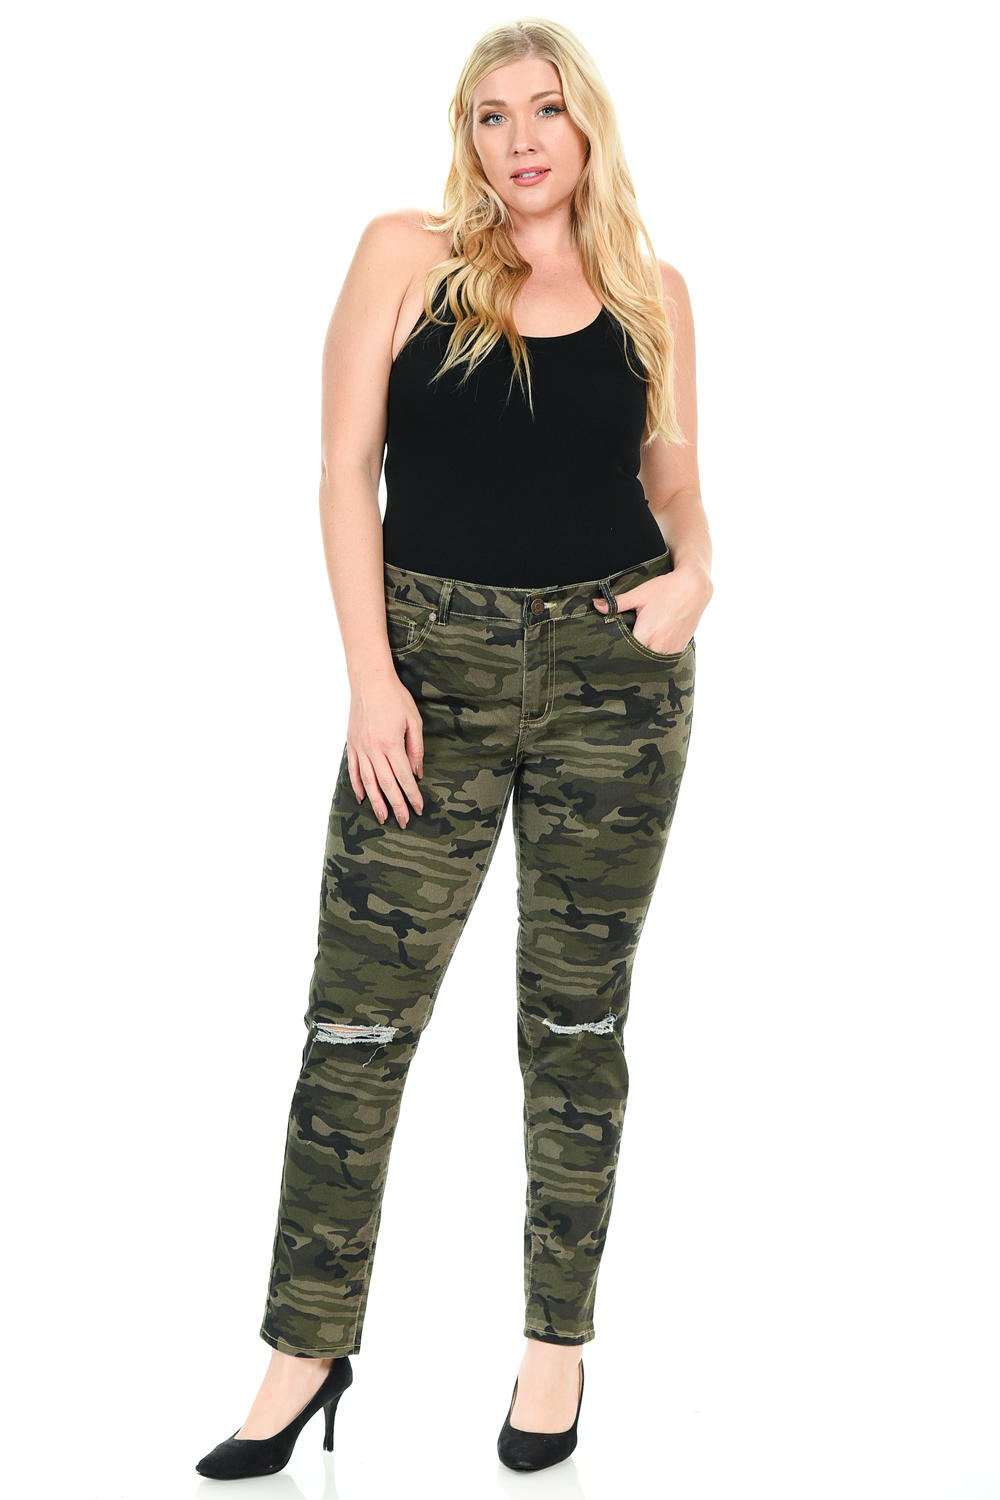 Sweet Look Premium Edition Women's Jeans - Plus Size - High Waist - Skinny - Style CS009-R